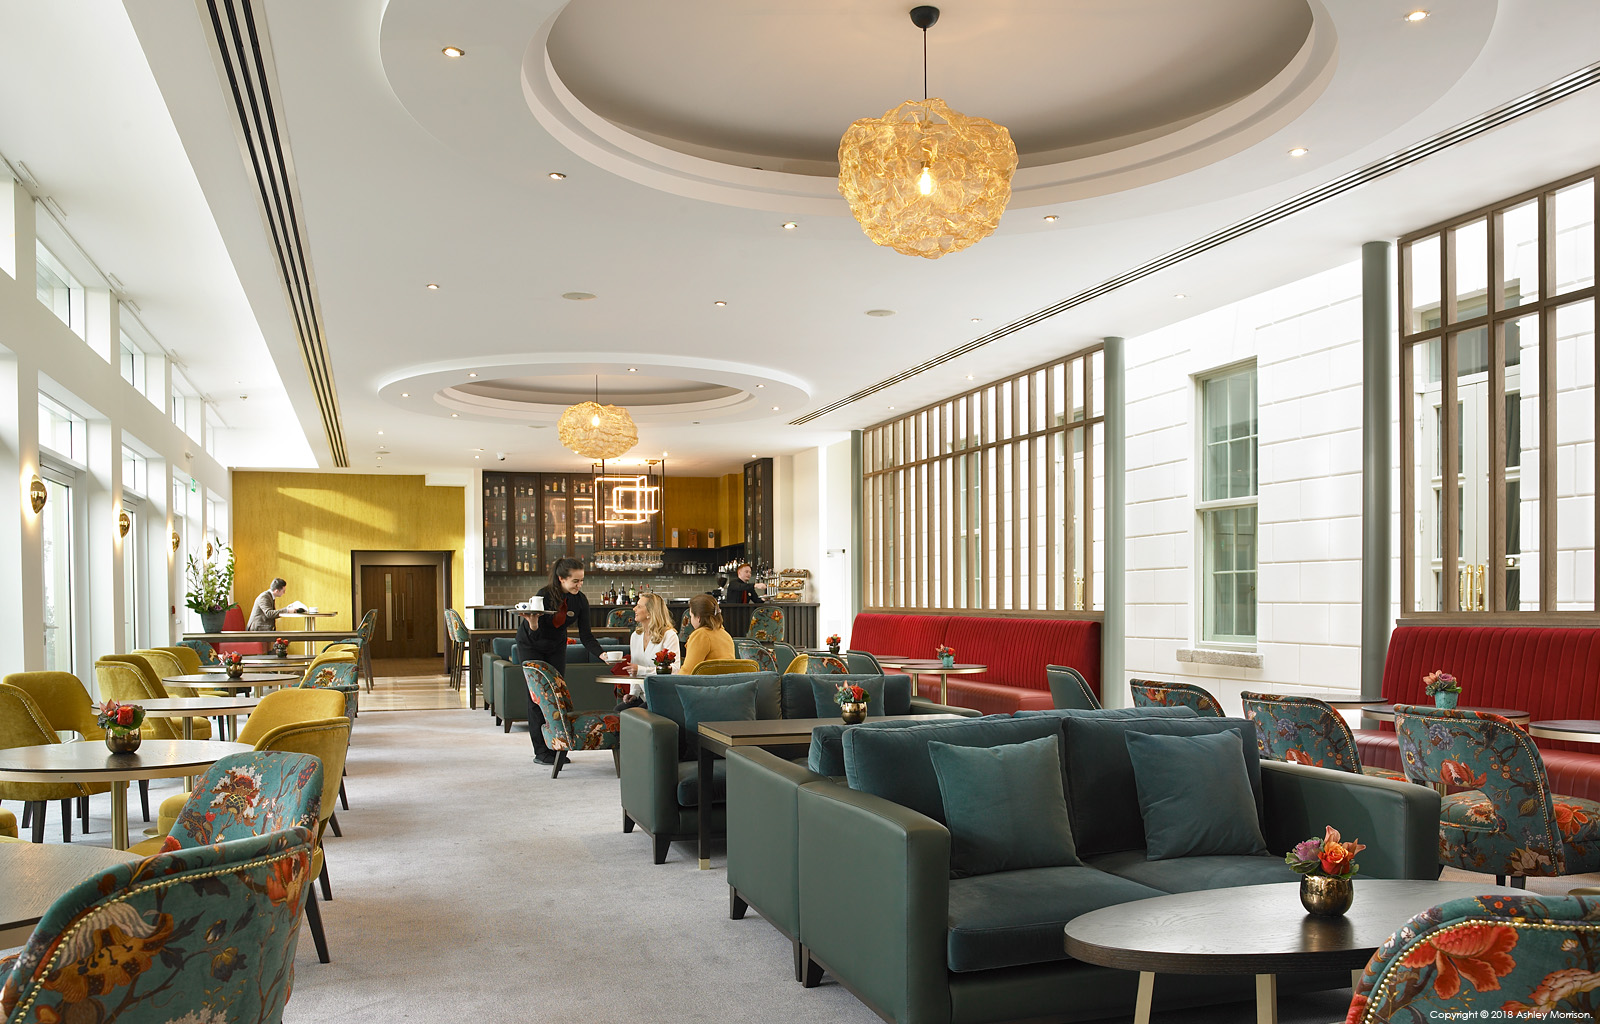 The lounge bar area at Dunboyne Castle Hotel & Spa in County Meath.